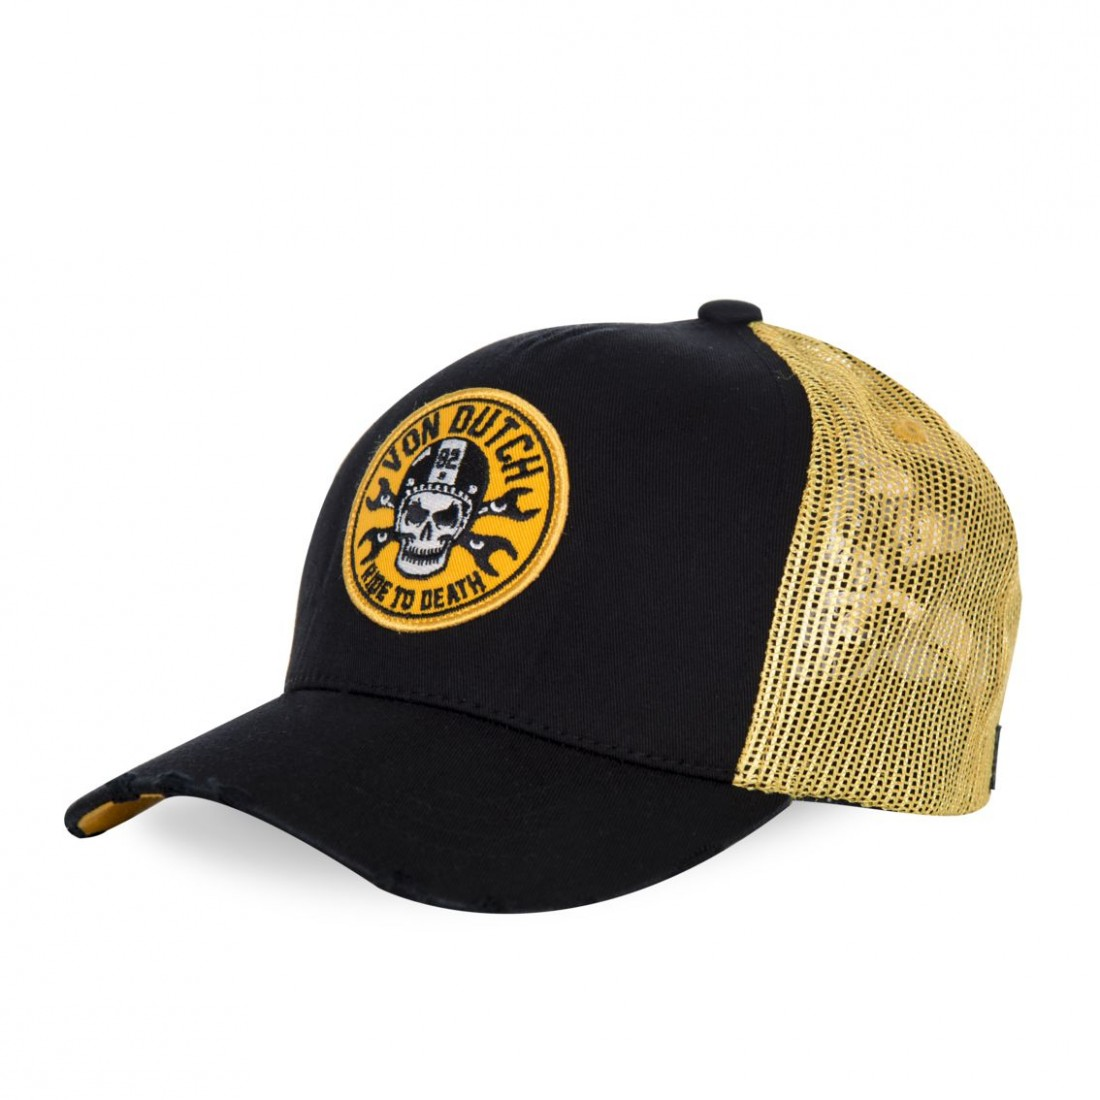 Casquette Baseball Filet Von Dutch Ride Noir